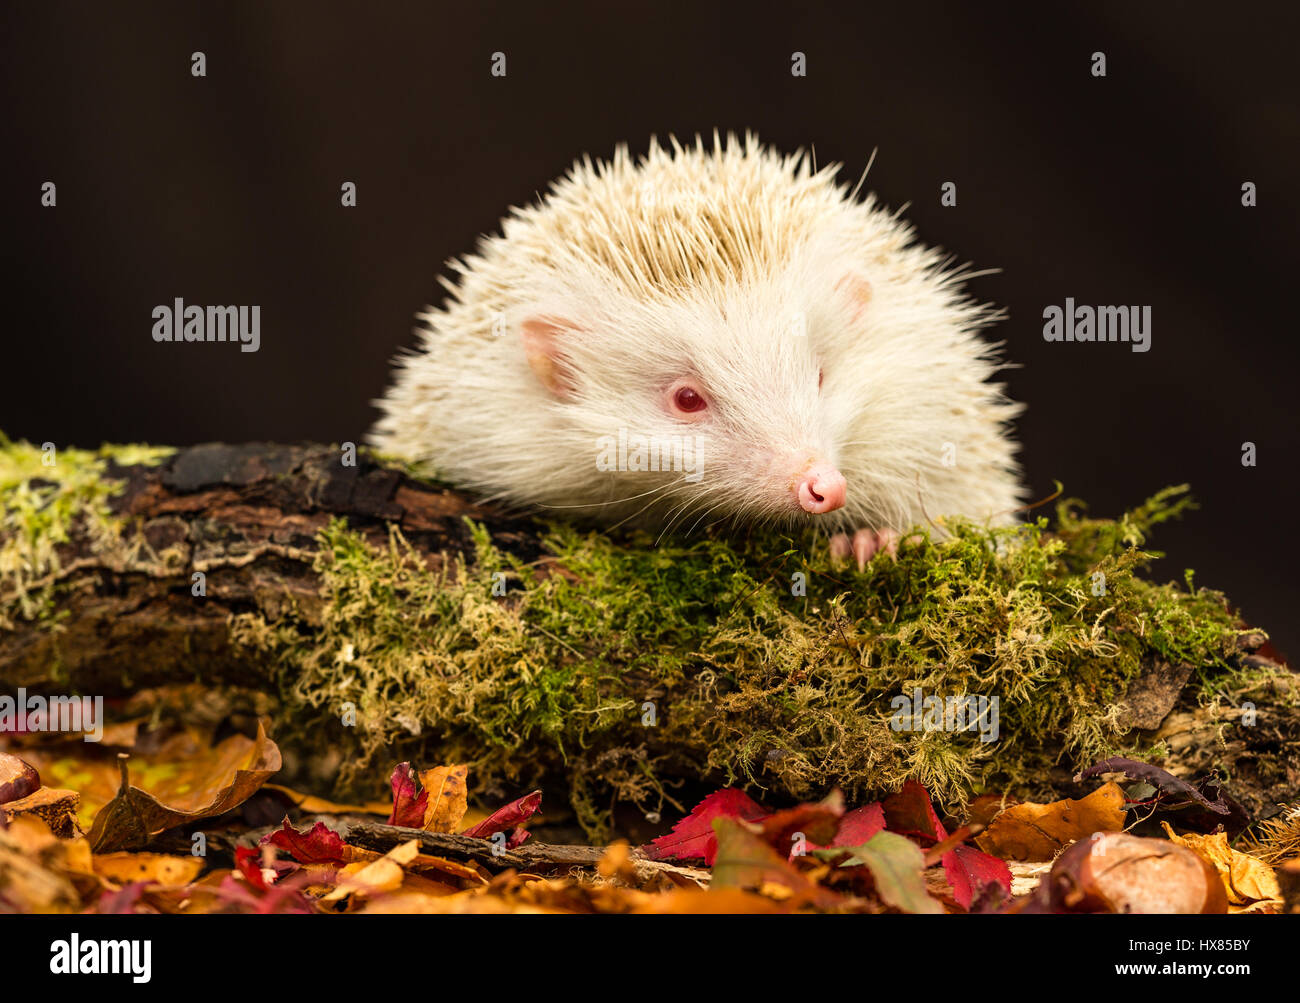 Hedgehog, wild, native, European hedgehog with the rare albino gene.  White spines and pink eyes, nose and paws. - Stock Image